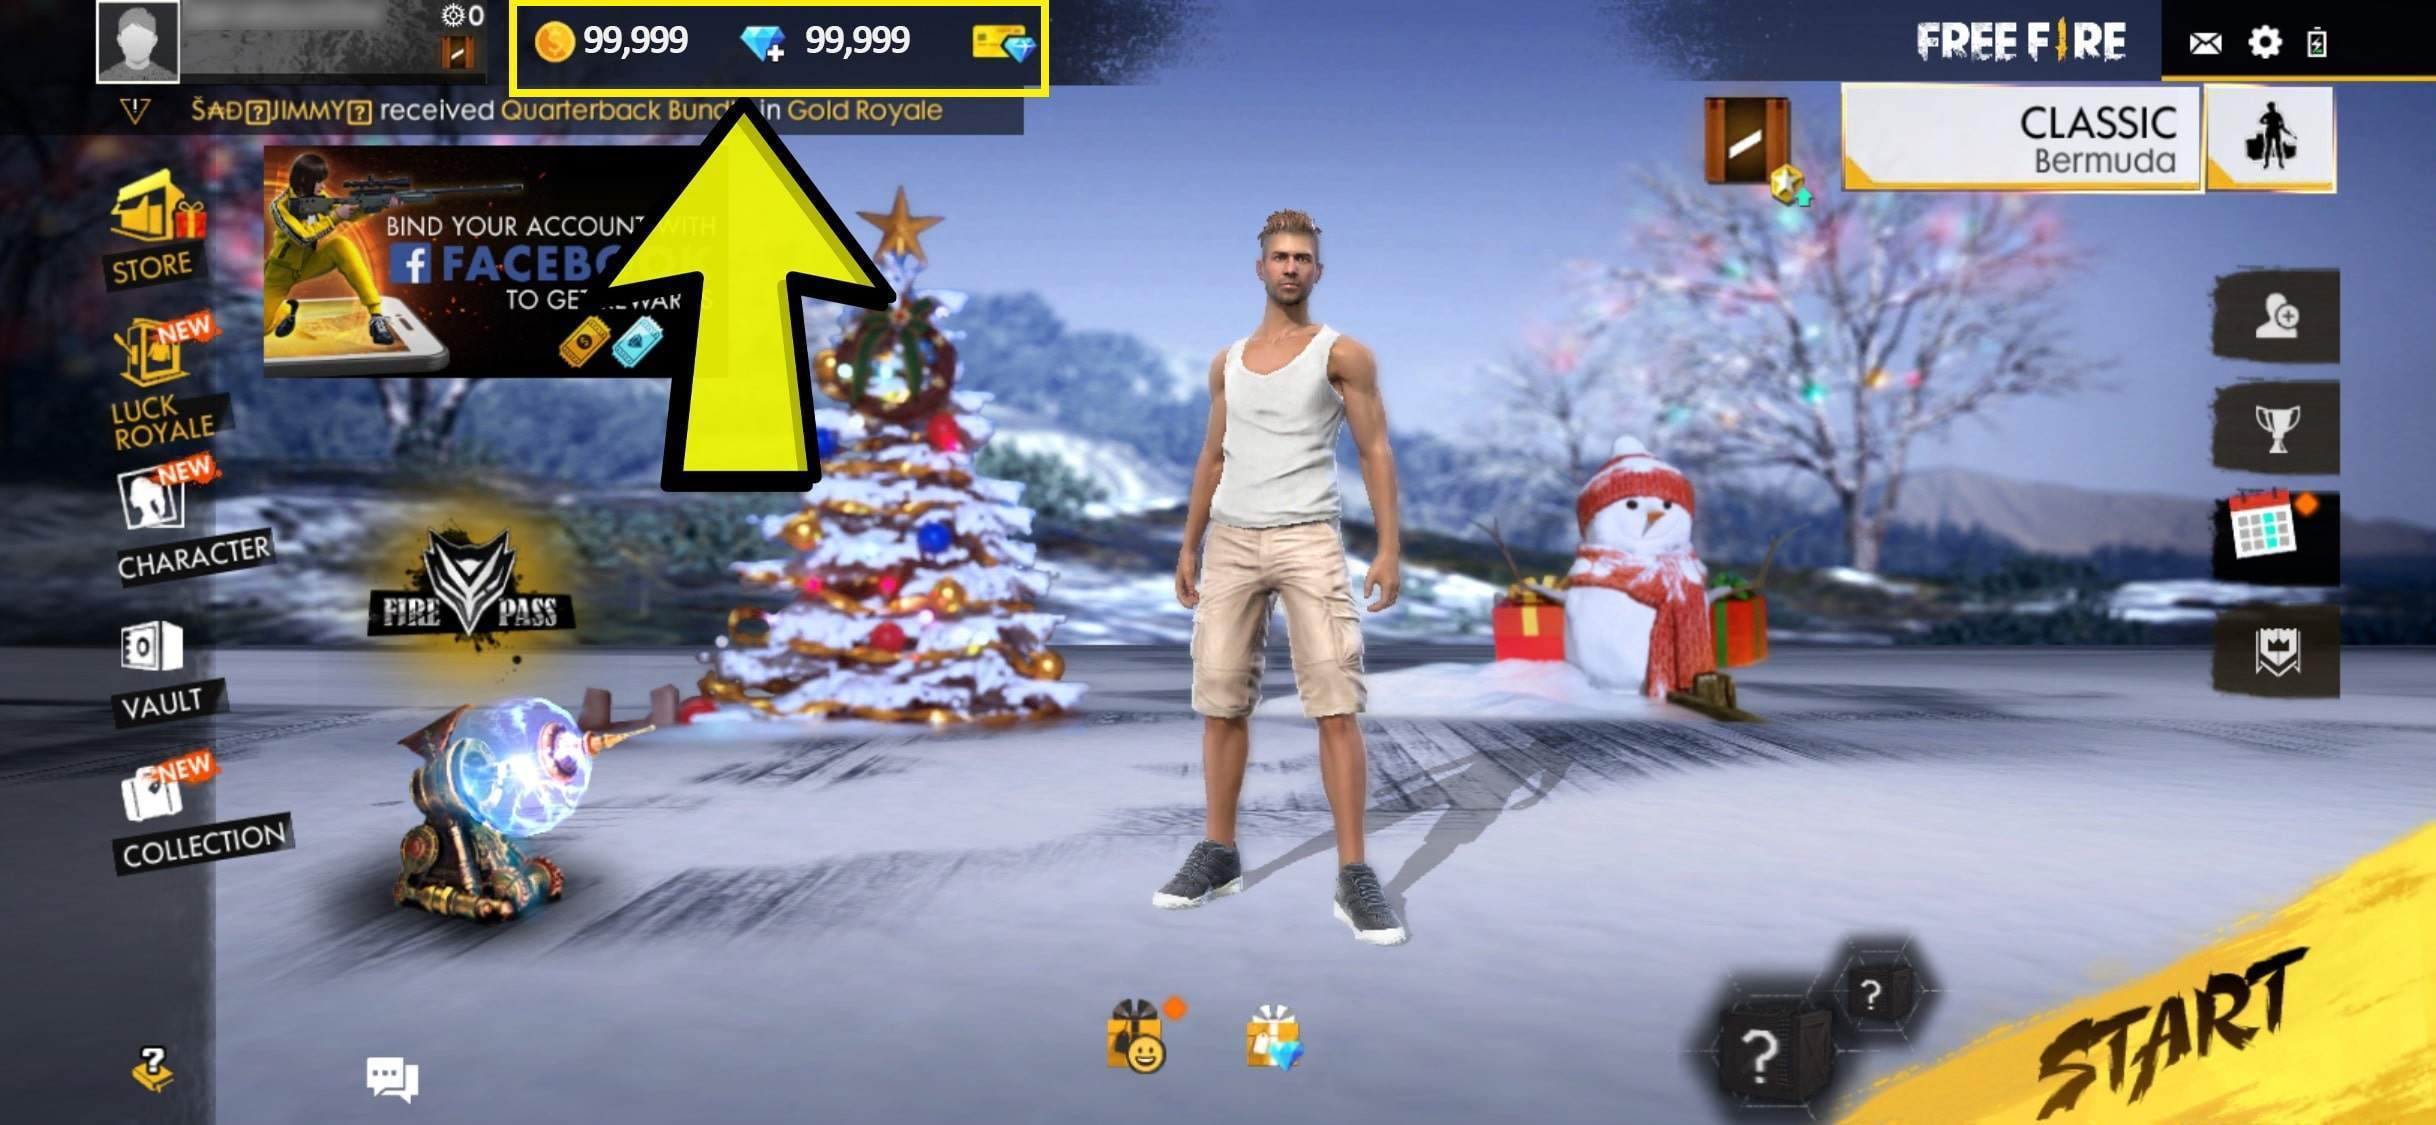 Claim Freefire Unlimited Coins and Diamonds For Free! Tested [20 Oct 2020]